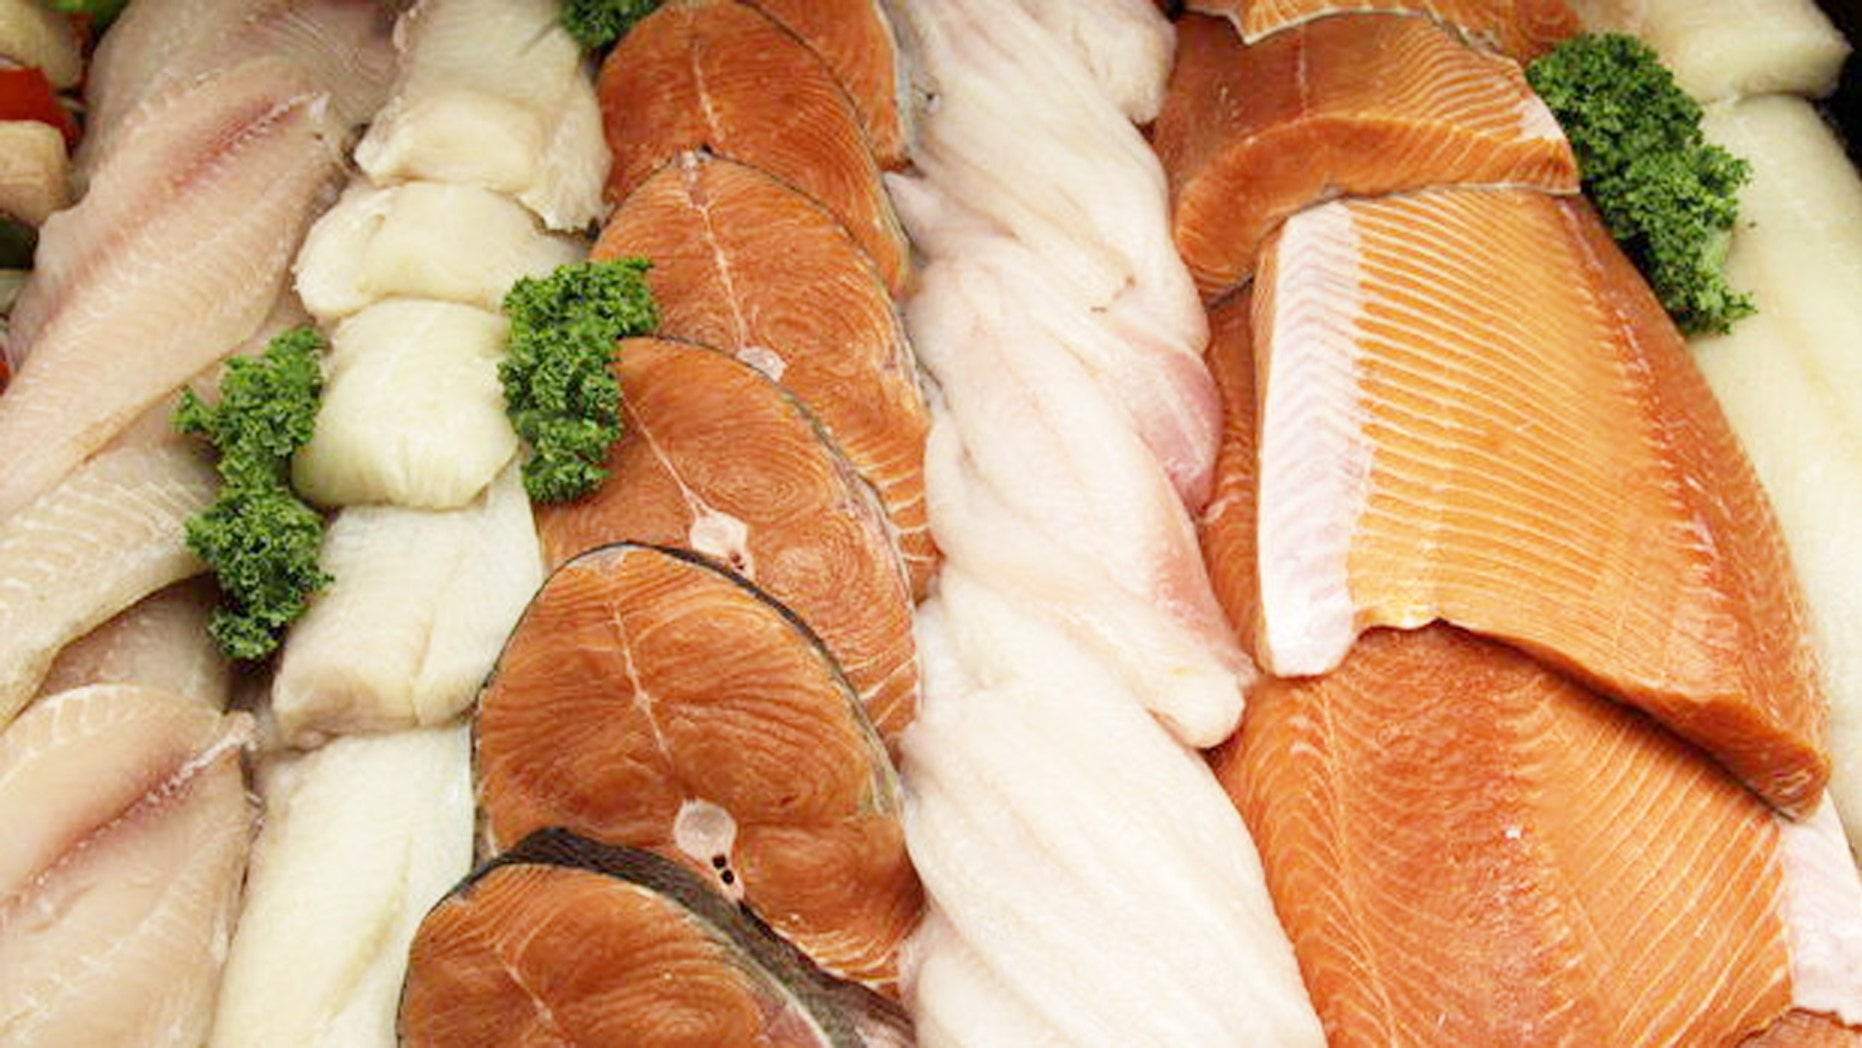 That wild caught salmon may actually be farmed.